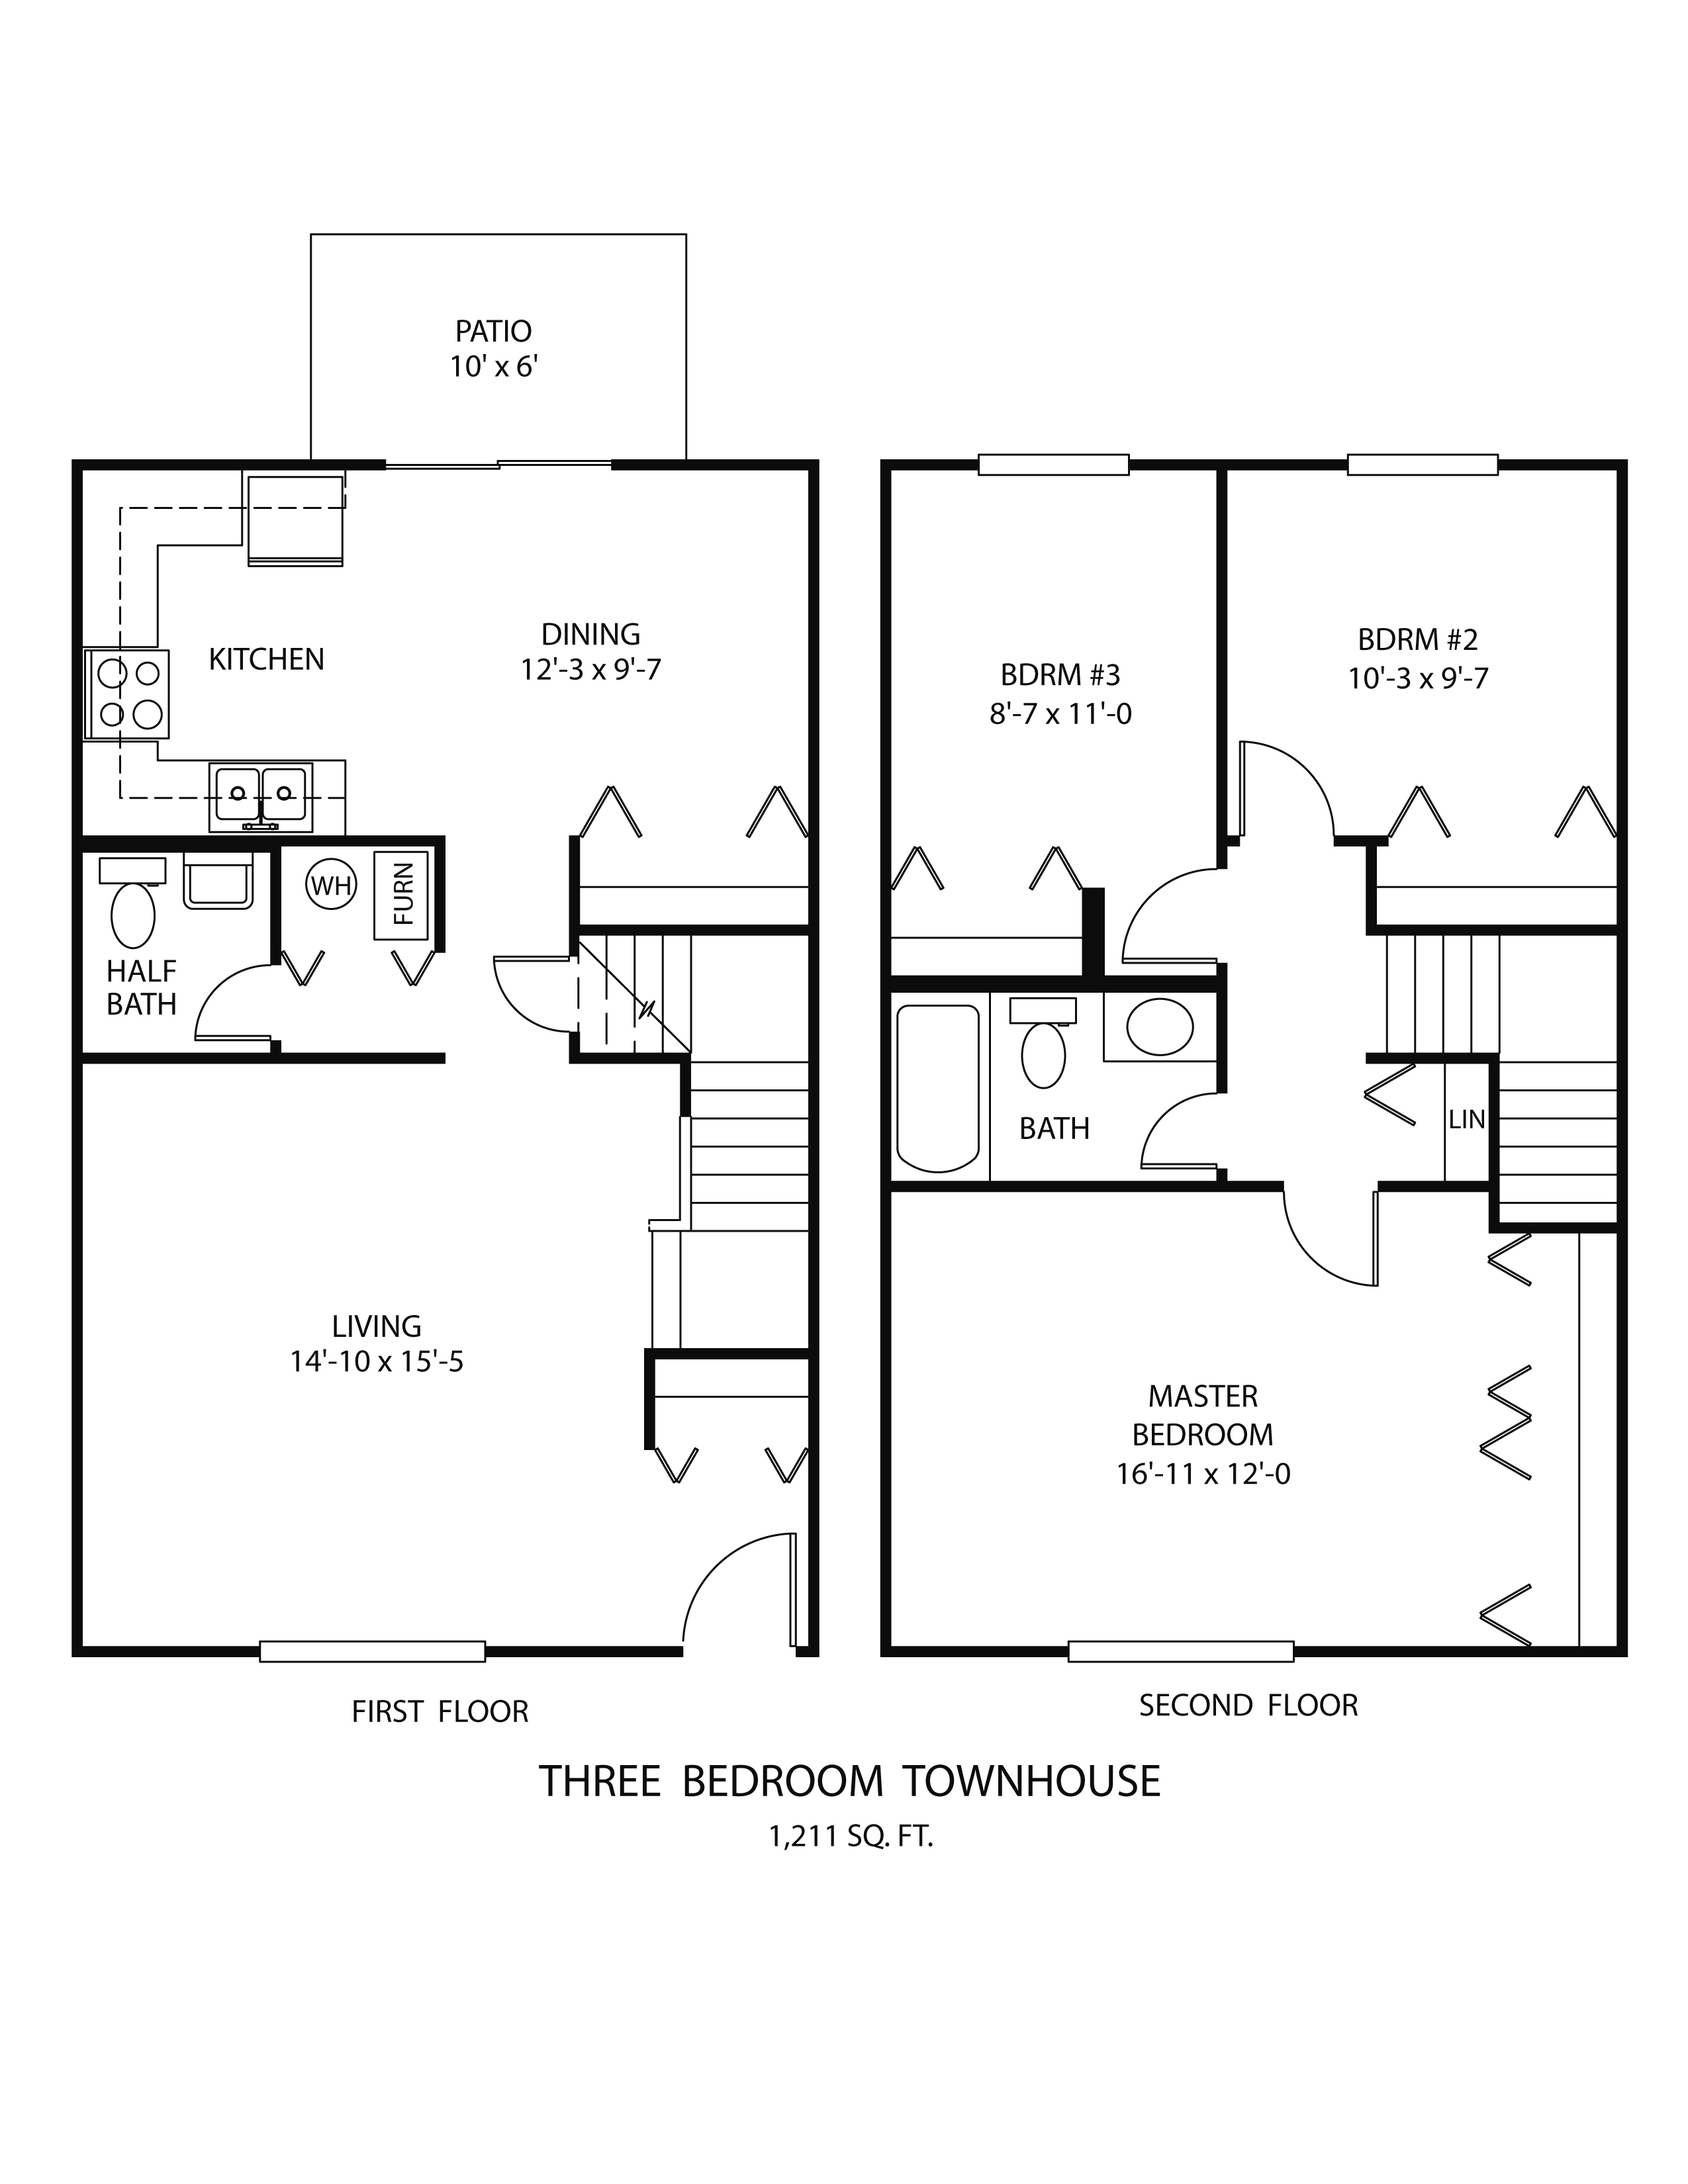 Lincoln Square on townhouse luxury interior, townhouse plans for narrow lots, townhouse rentals, townhouse blueprints, garage apartment plans, 2 car garage duplex plans, townhouse design, townhouse home plans with basement, townhouse construction, townhouse renderings, townhouse deck plans, townhouse master plan, townhouse drawings, townhouse elevations, townhouse layout, townhouse community,